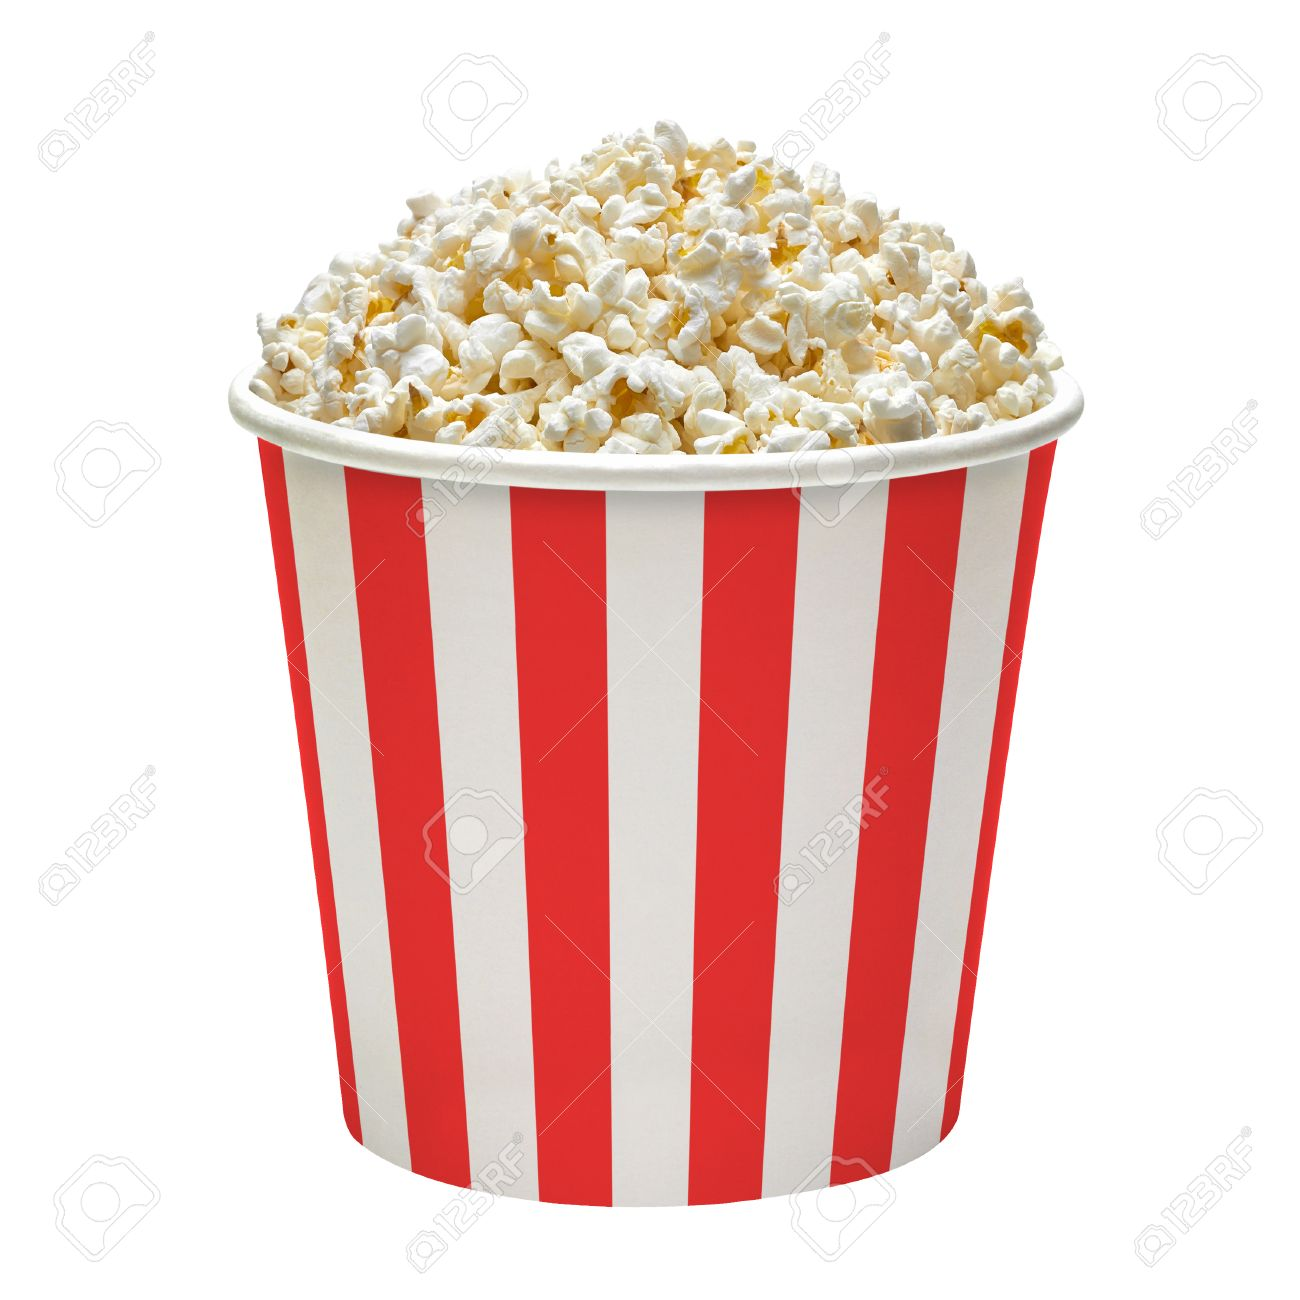 In Striped Popcorn Bucket On A White Background Stock Photo 1300x1300